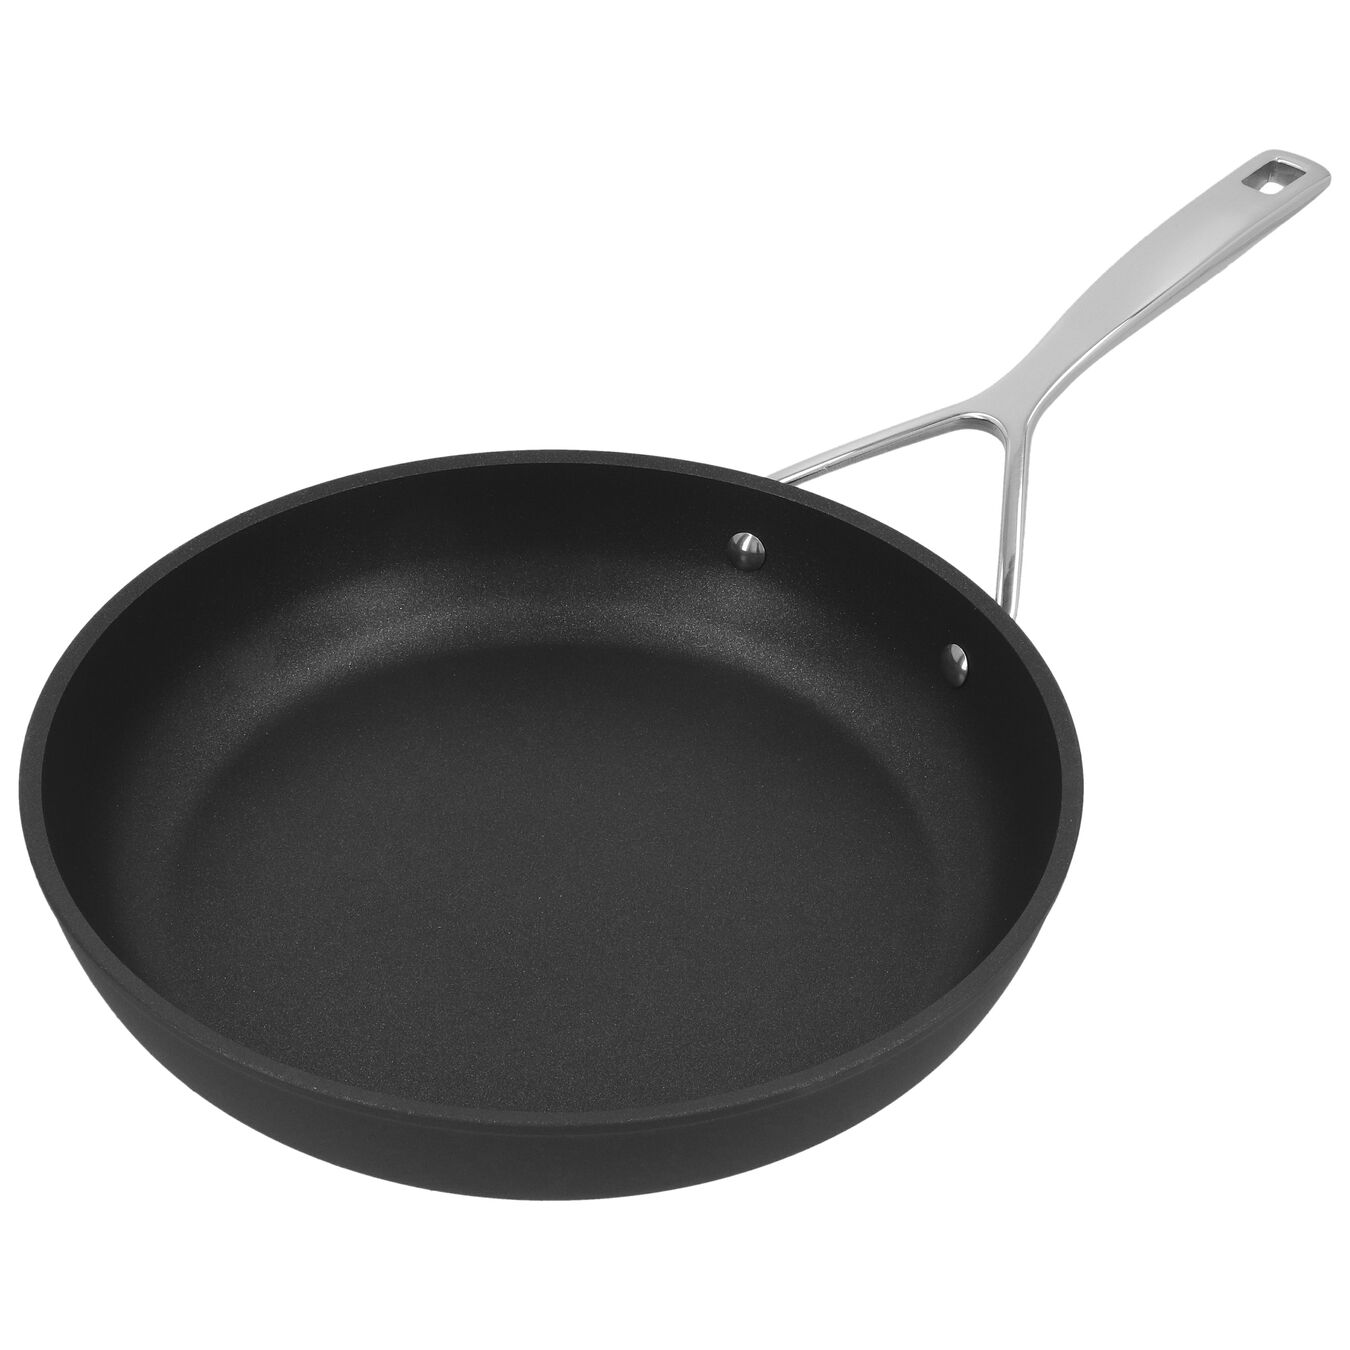 10-inch, Aluminium, Non-stick Frying pan,,large 4